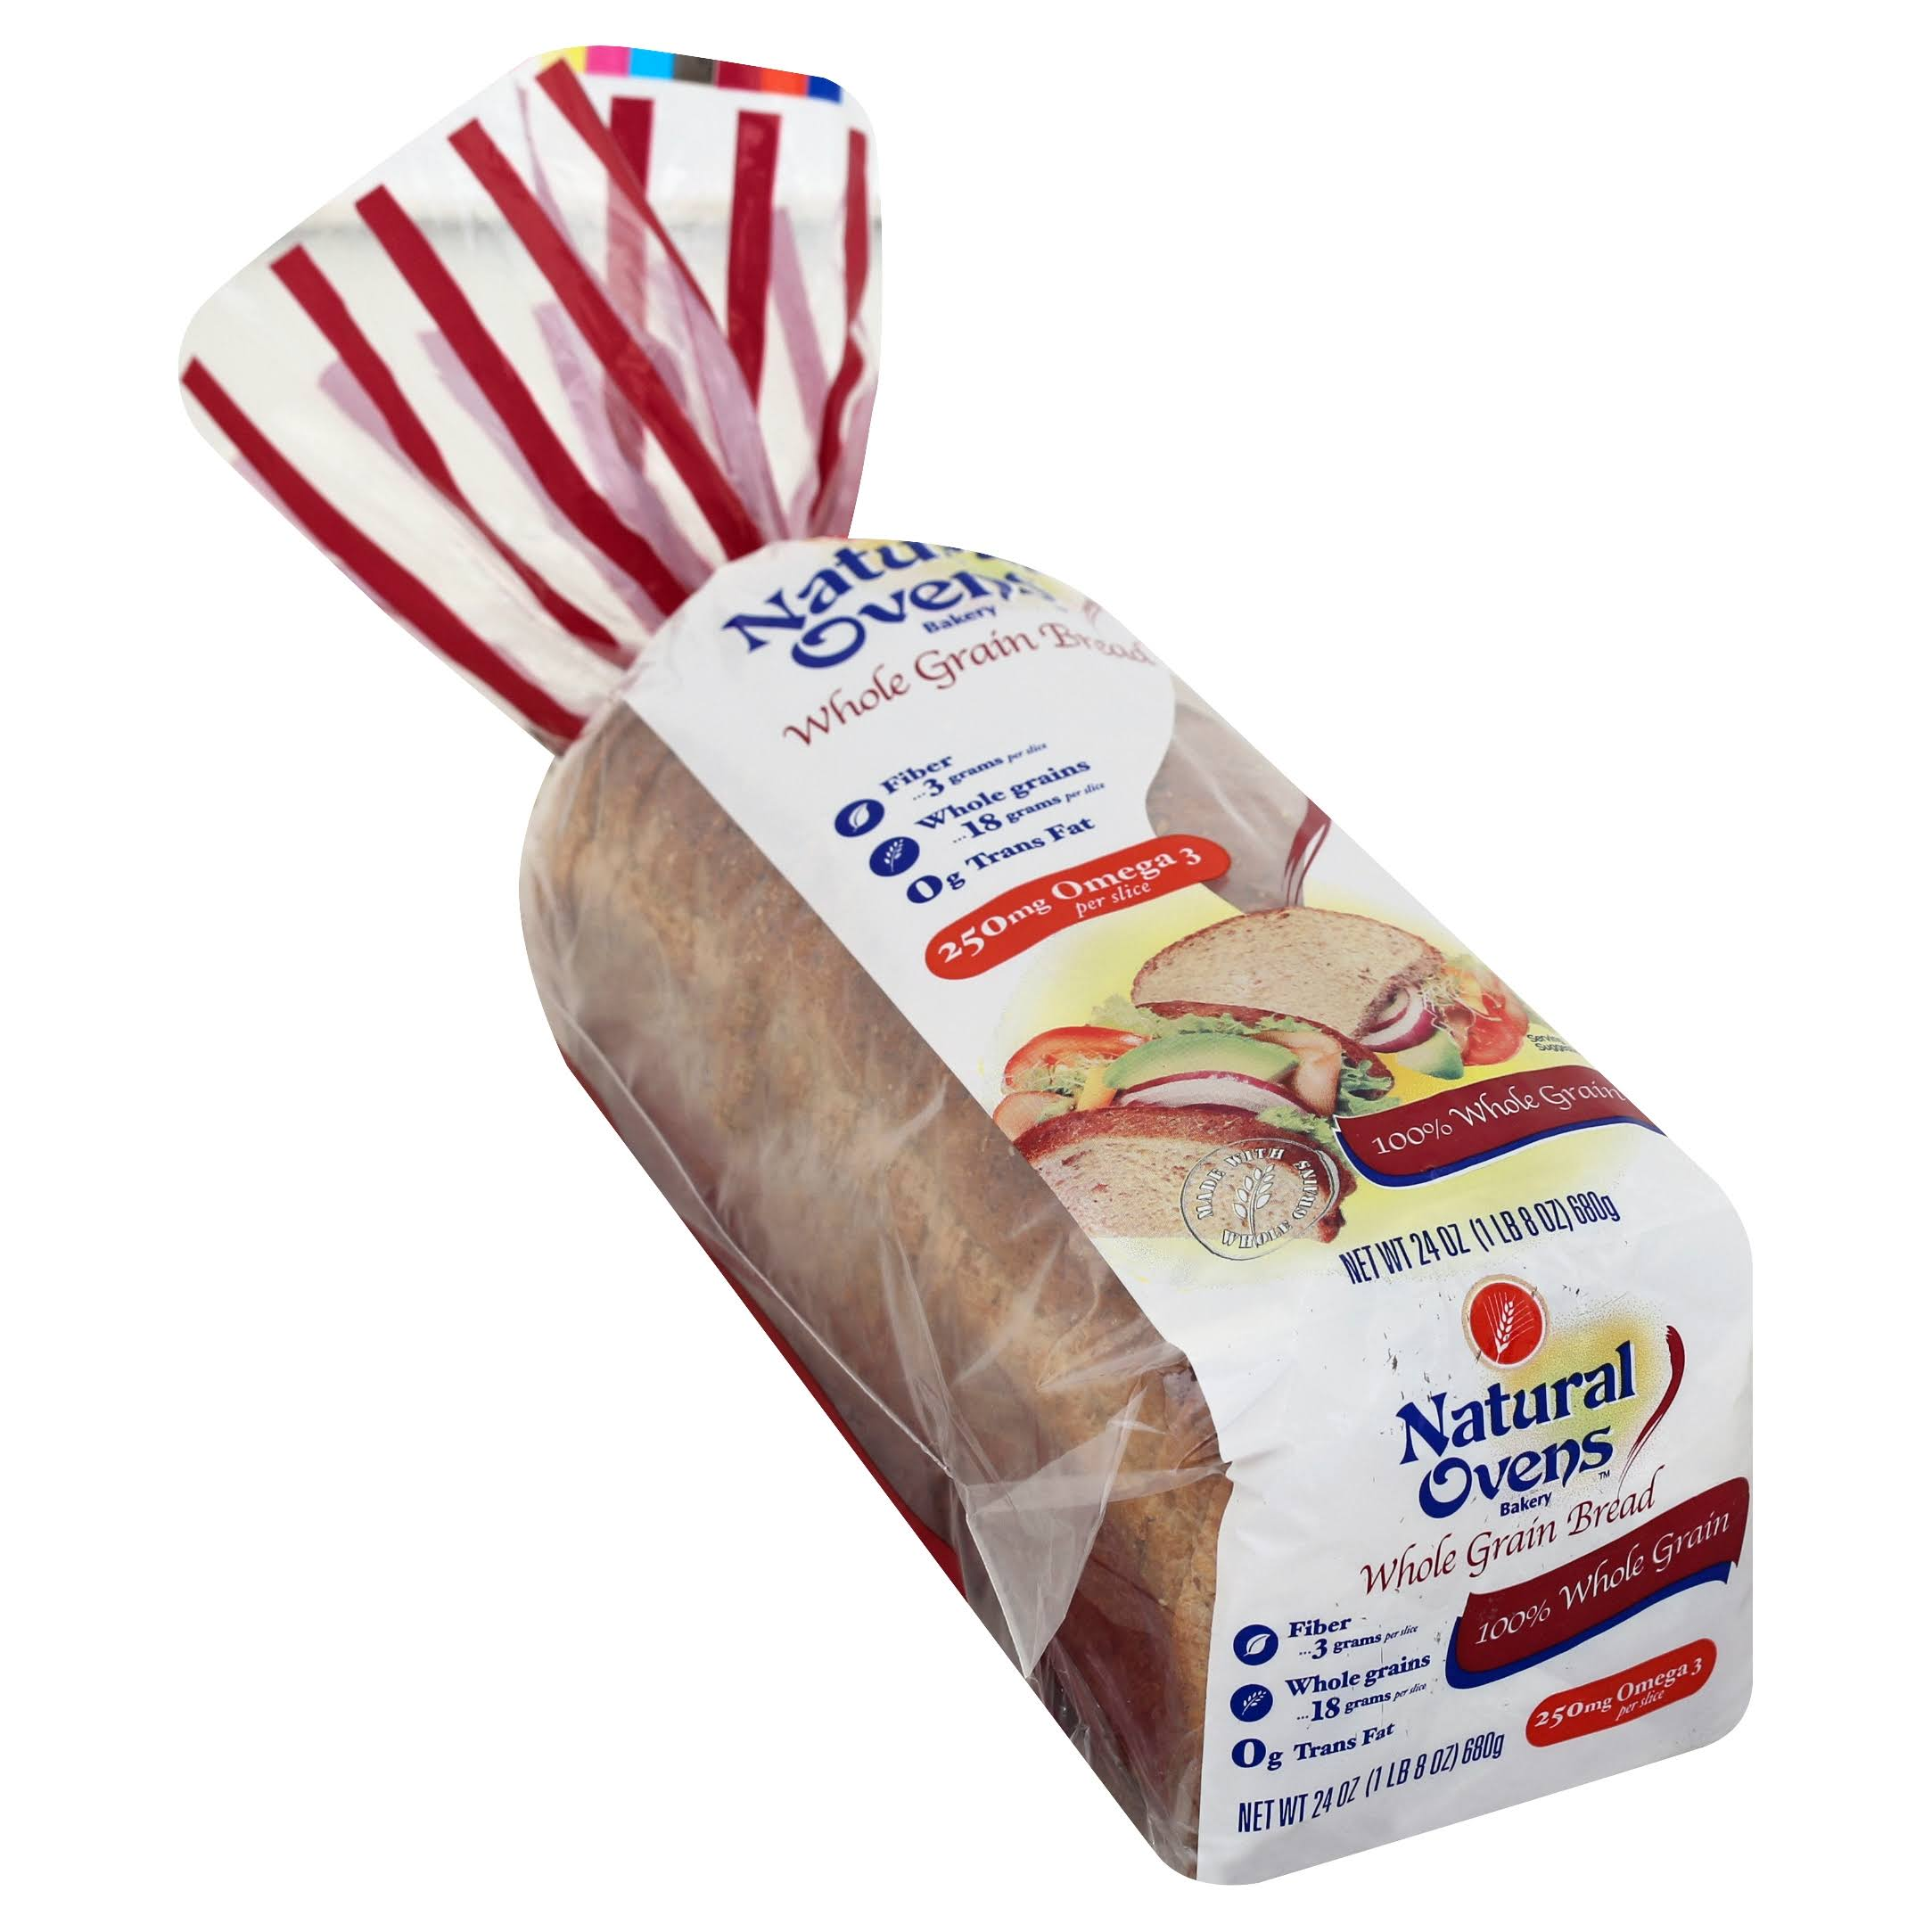 Natural Ovens Bakery Bread, 100% Whole Grain - 24 oz